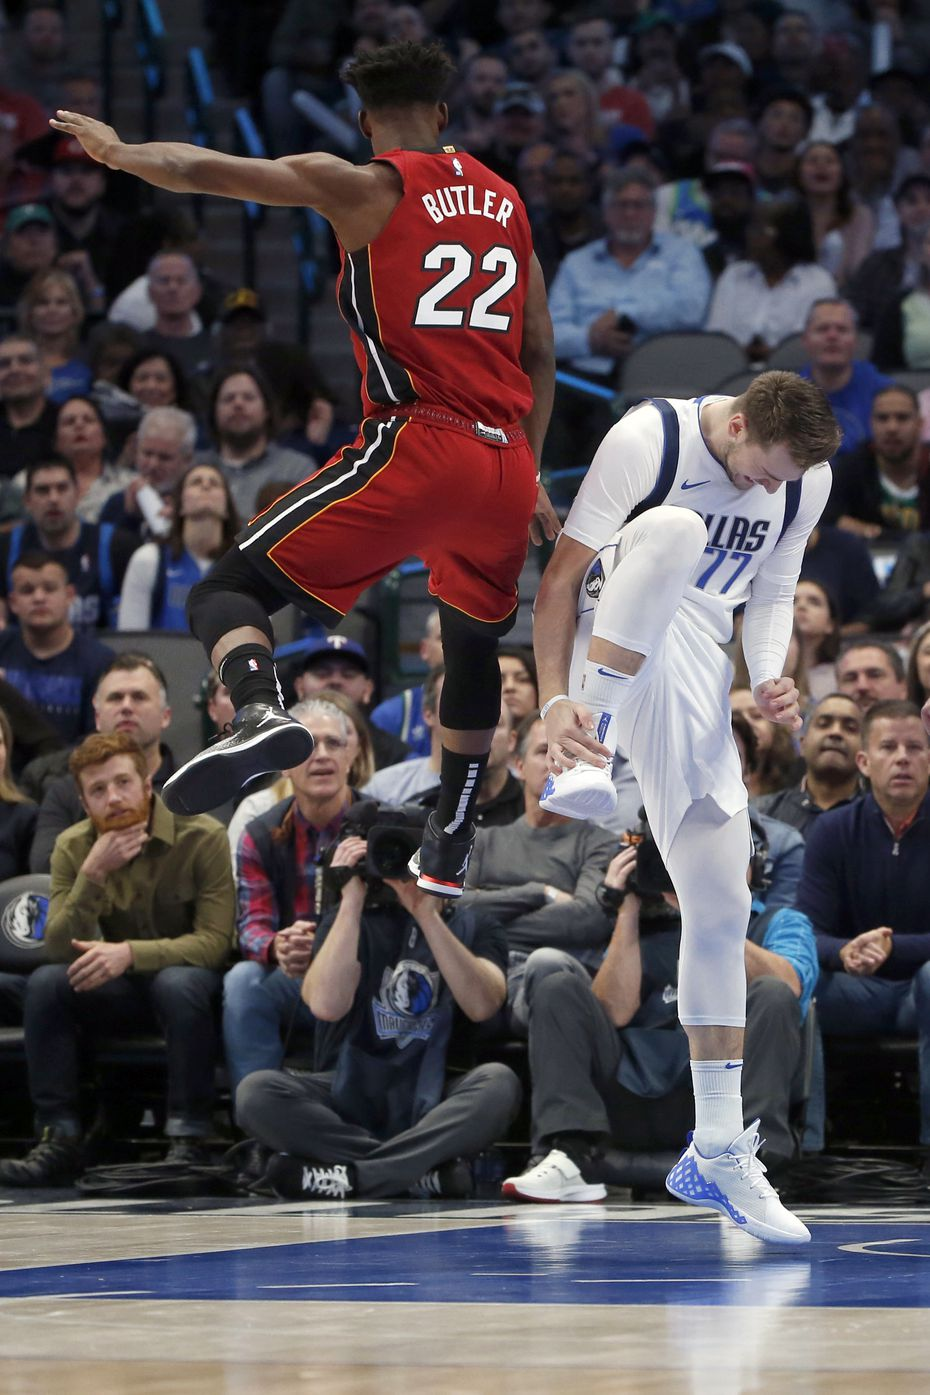 Dallas Mavericks forward Luka Doncic (77) reacts after injuring himself as Miami Heat forward Jimmy Butler (22) defends him during the first half of an NBA basketball game in Dallas, Saturday, Dec 14, 2019. (AP Photo/Michael Ainsworth)